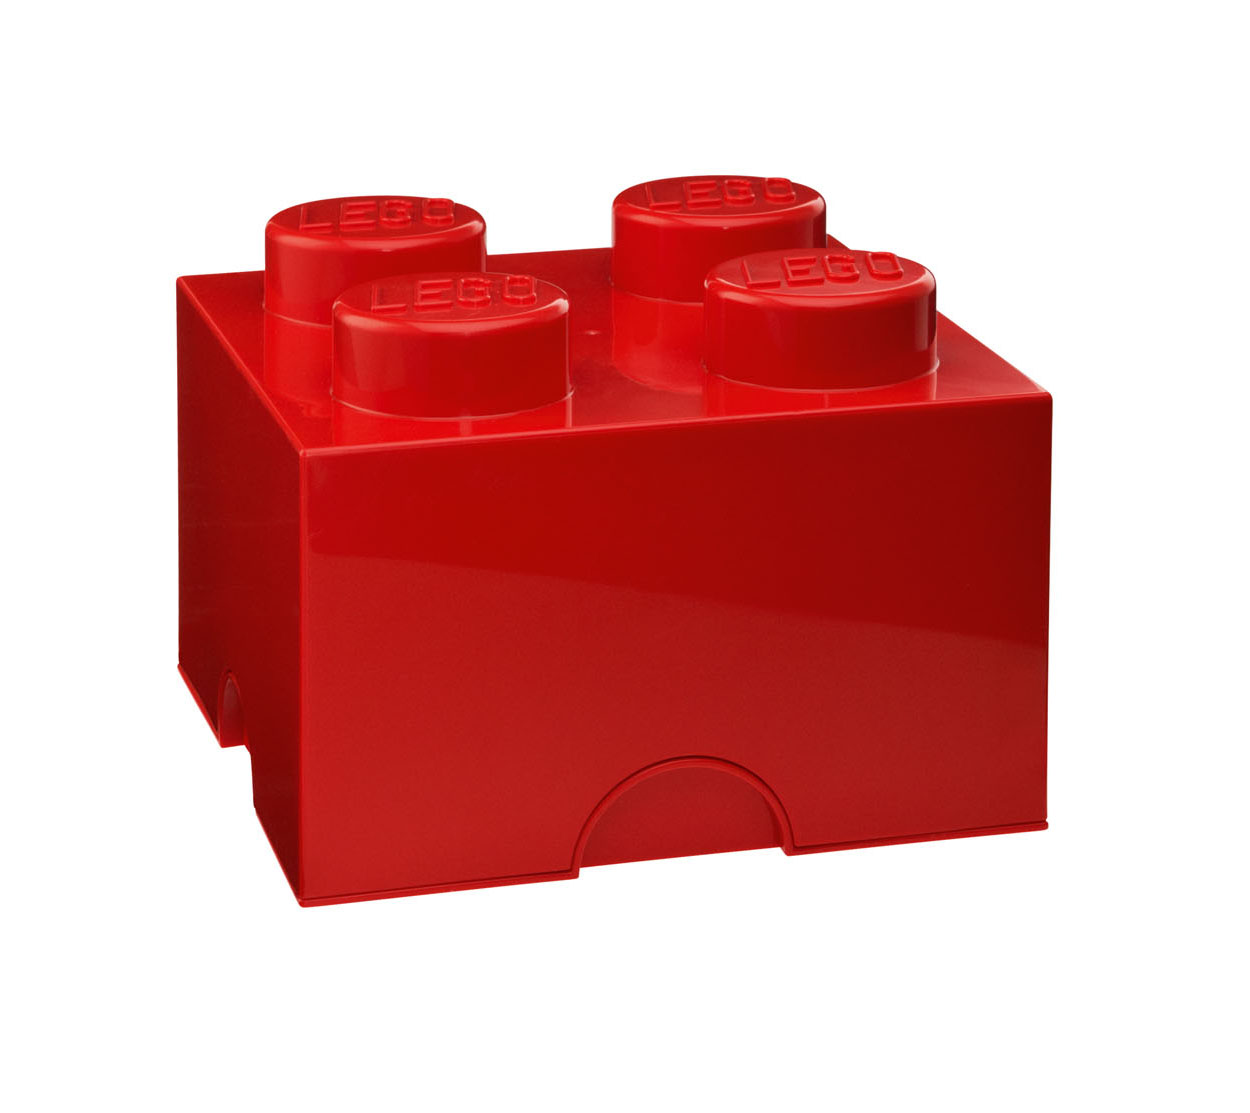 Lot de 6 boites de rangement Lego rouge 4 plots